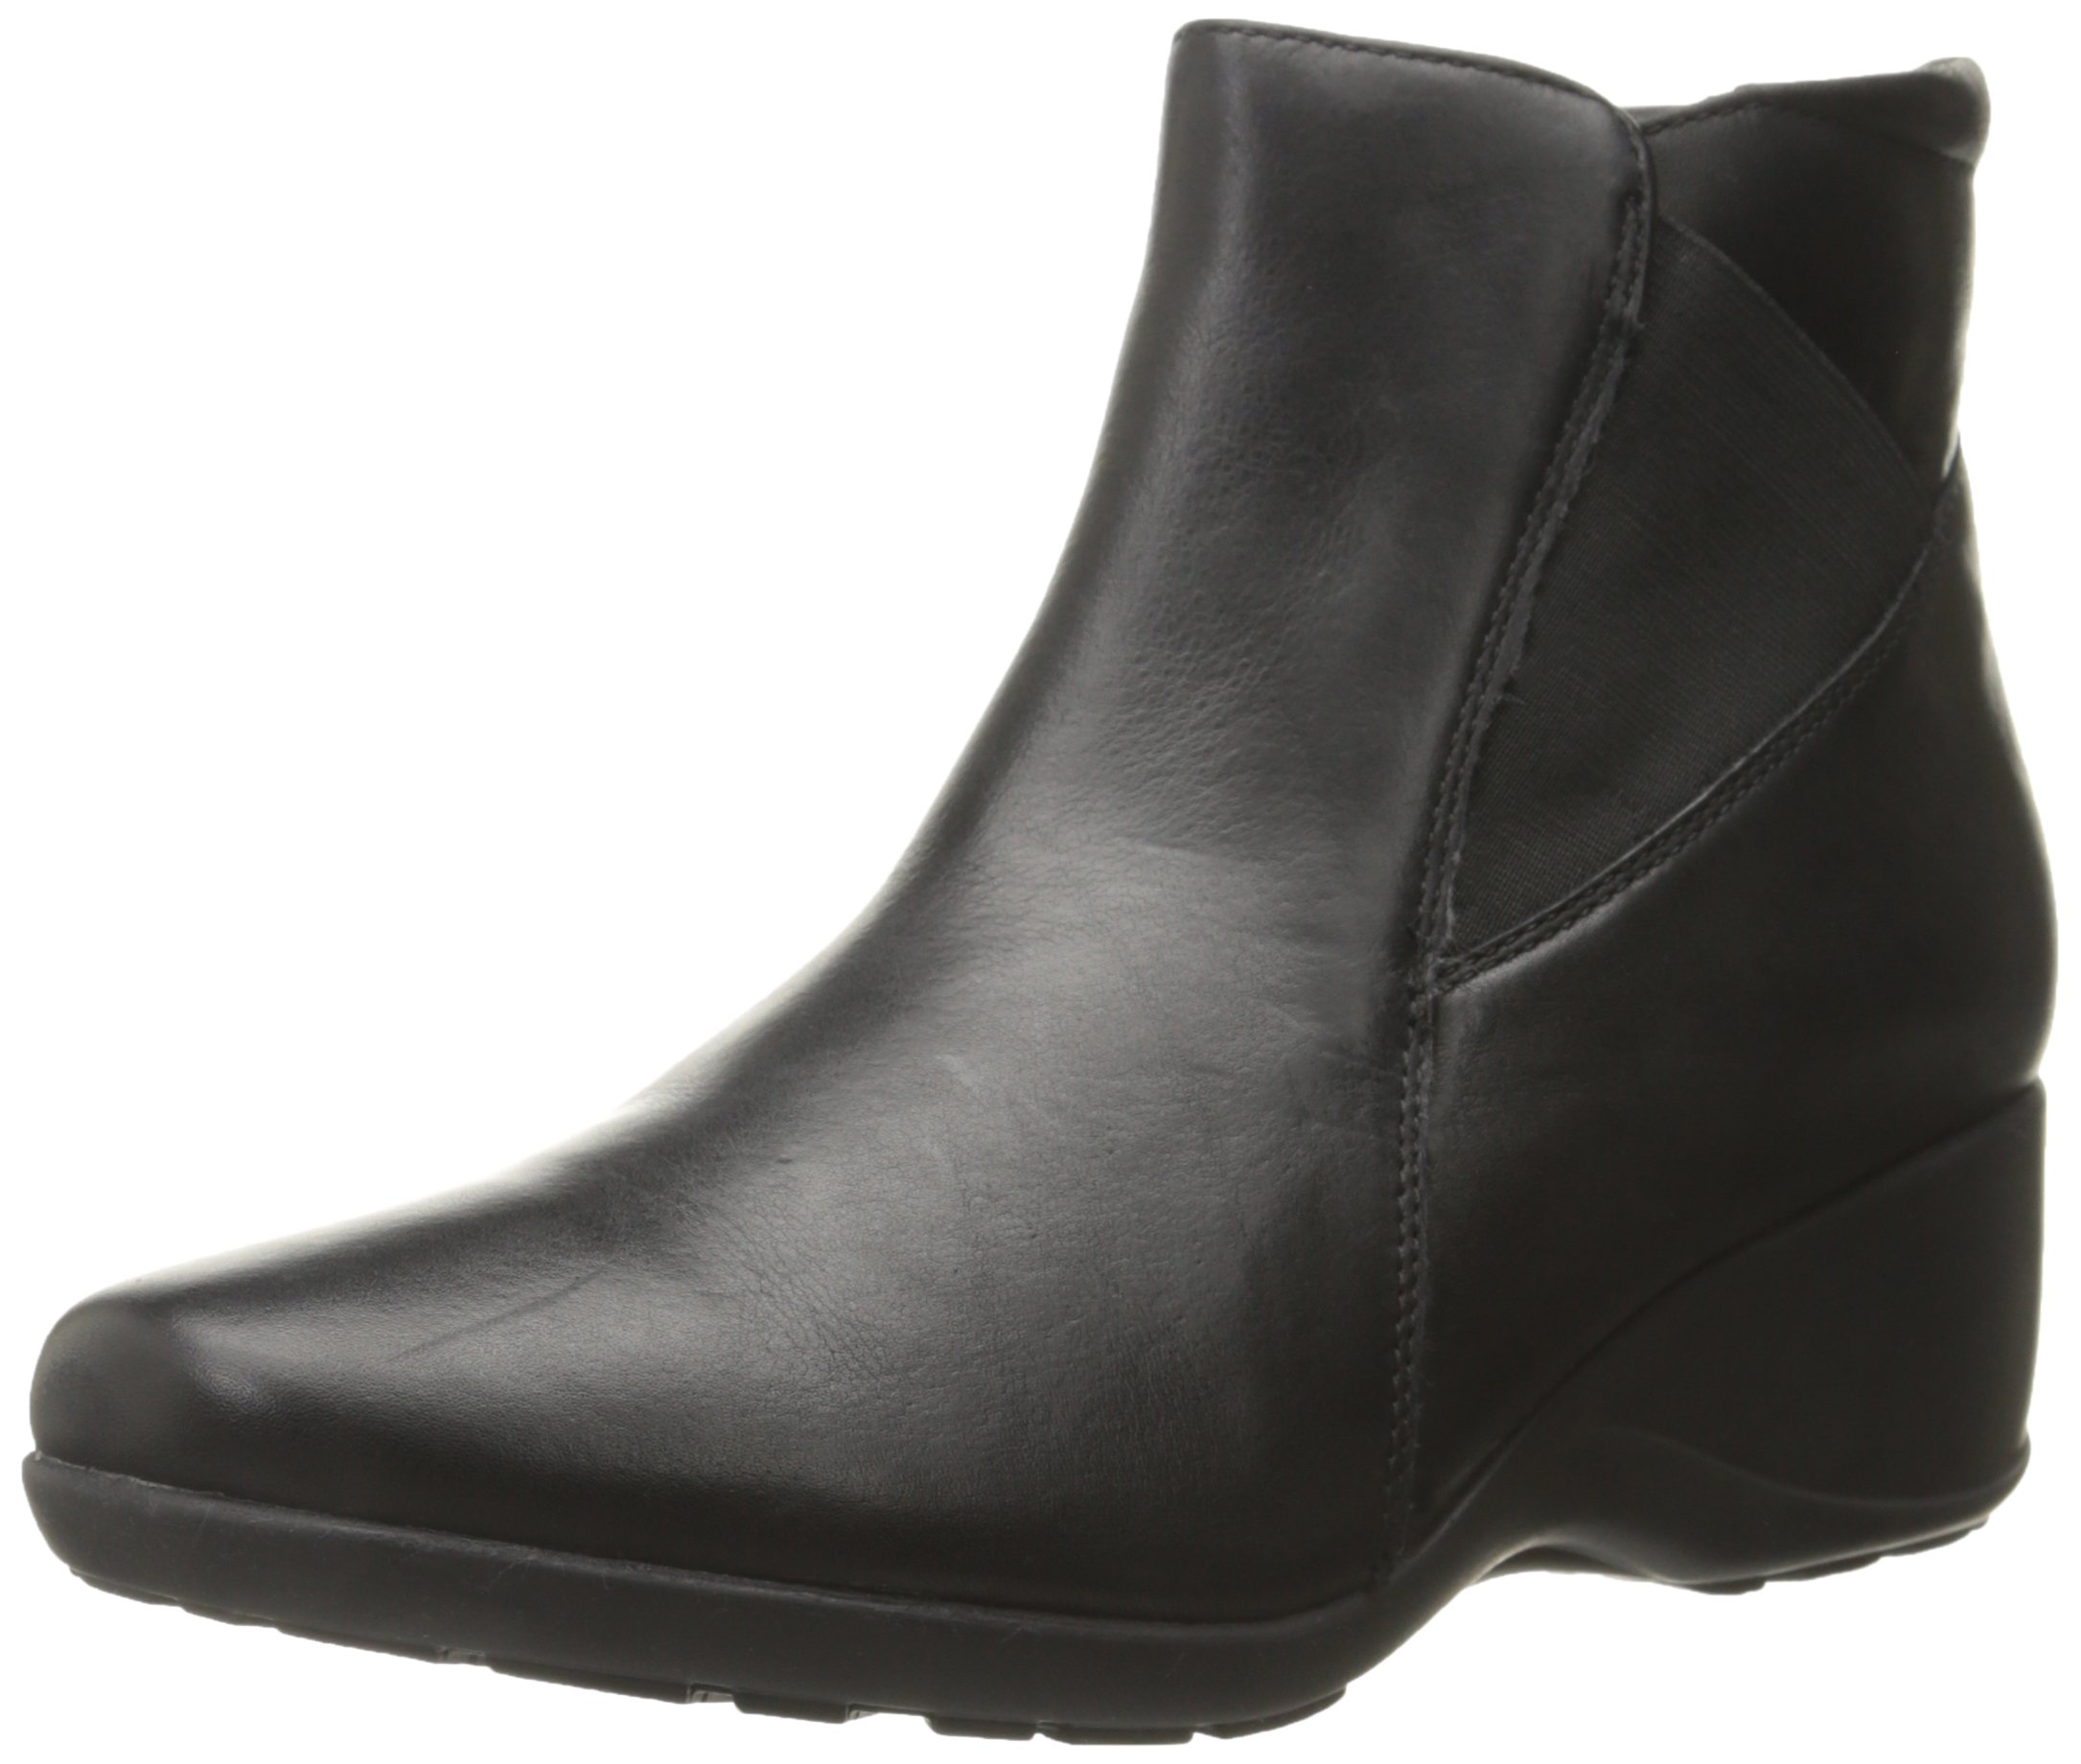 Clarks Women's Allura Mystic Boot, Black Leather, 8.5 M US